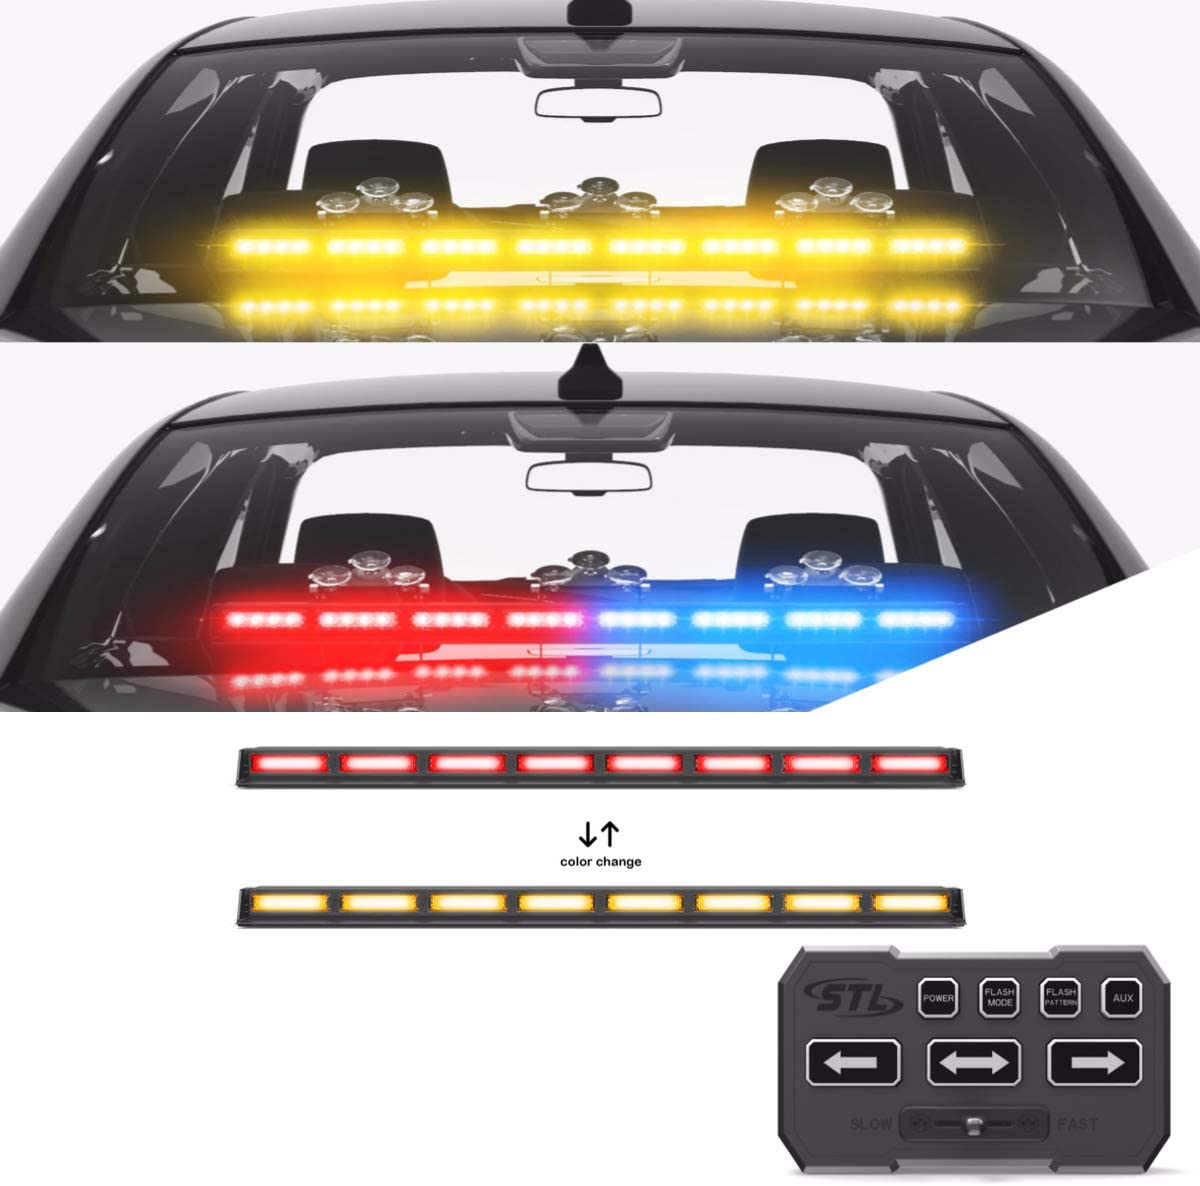 SpeedTech Lights Multicolor Striker TIR 8 Head LED Traffic Advisor Windshield Mount Strobe Light Bar for Emergency Vehicles/Hazard Warning Directional Flashing w/Control Box - Red/Red - Amber